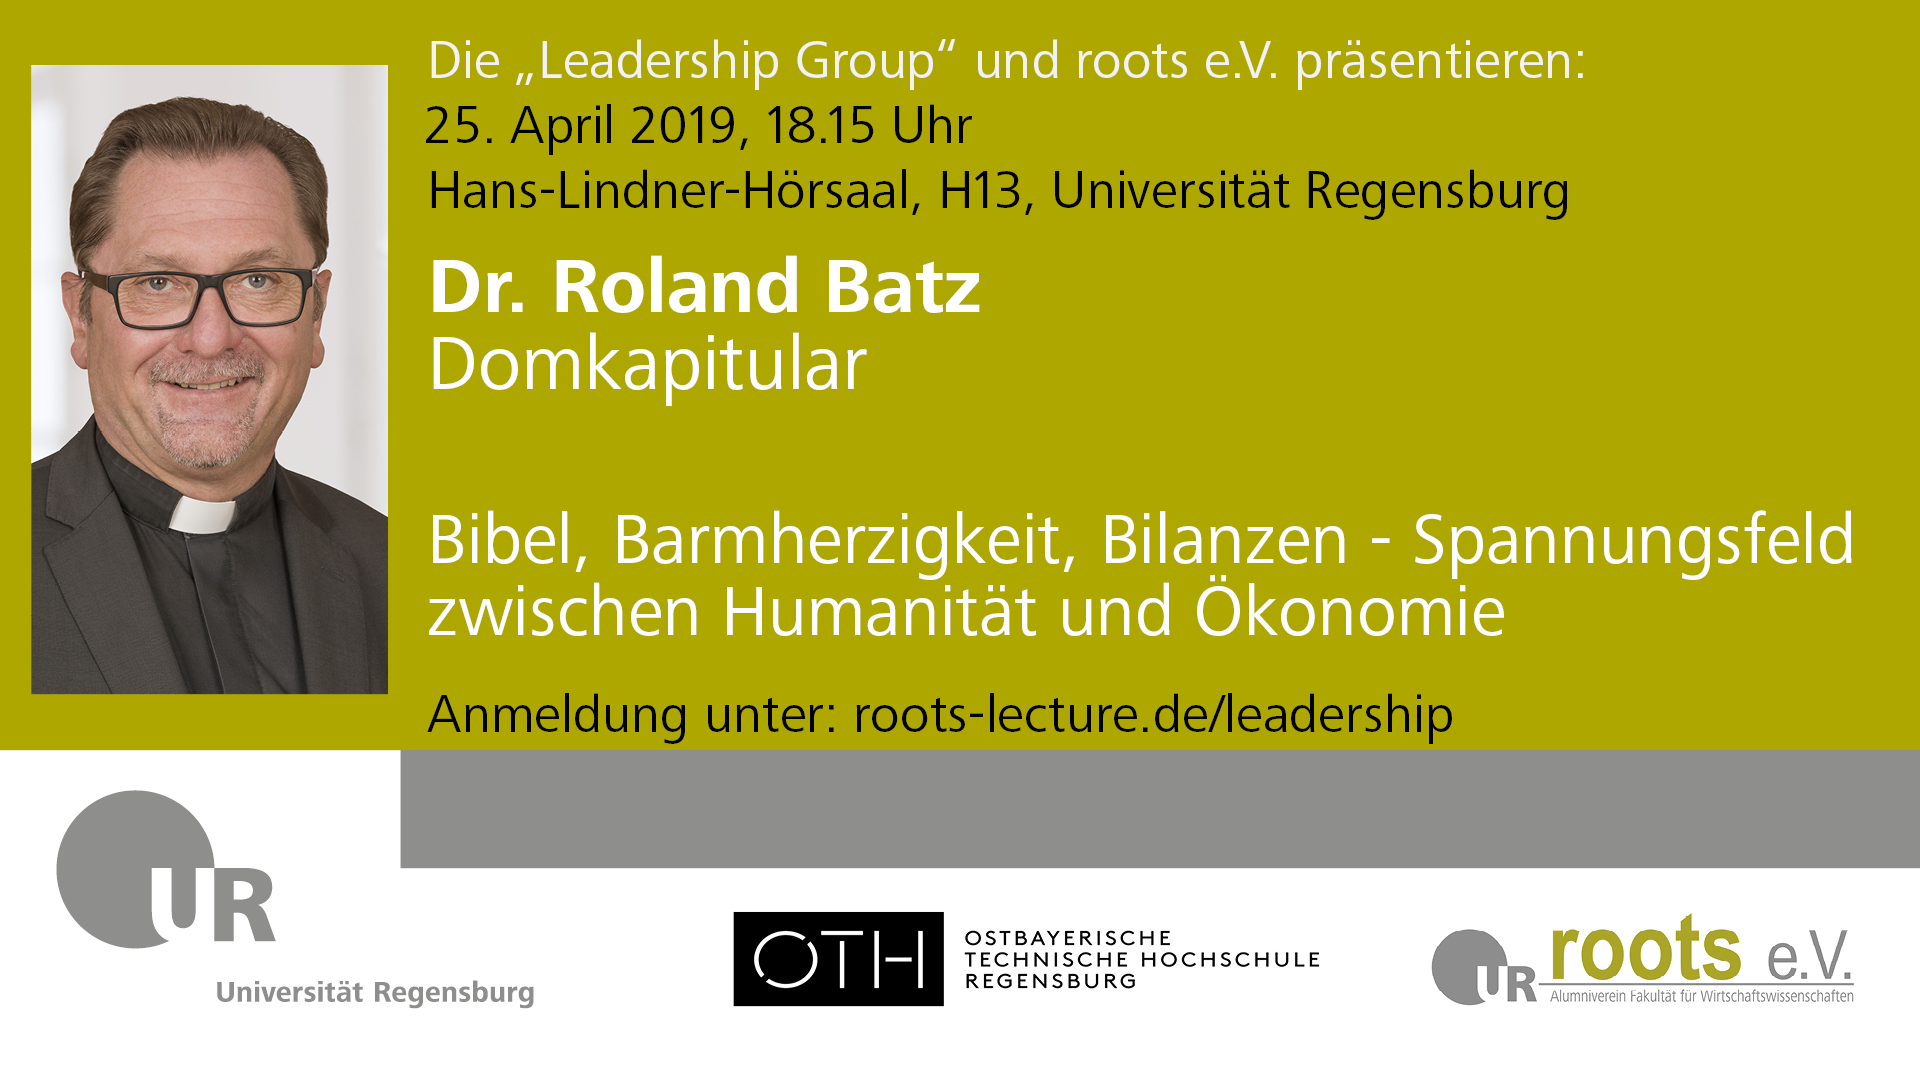 Lectures in Leadership mit Dr. Roland Batz, Domkapitular